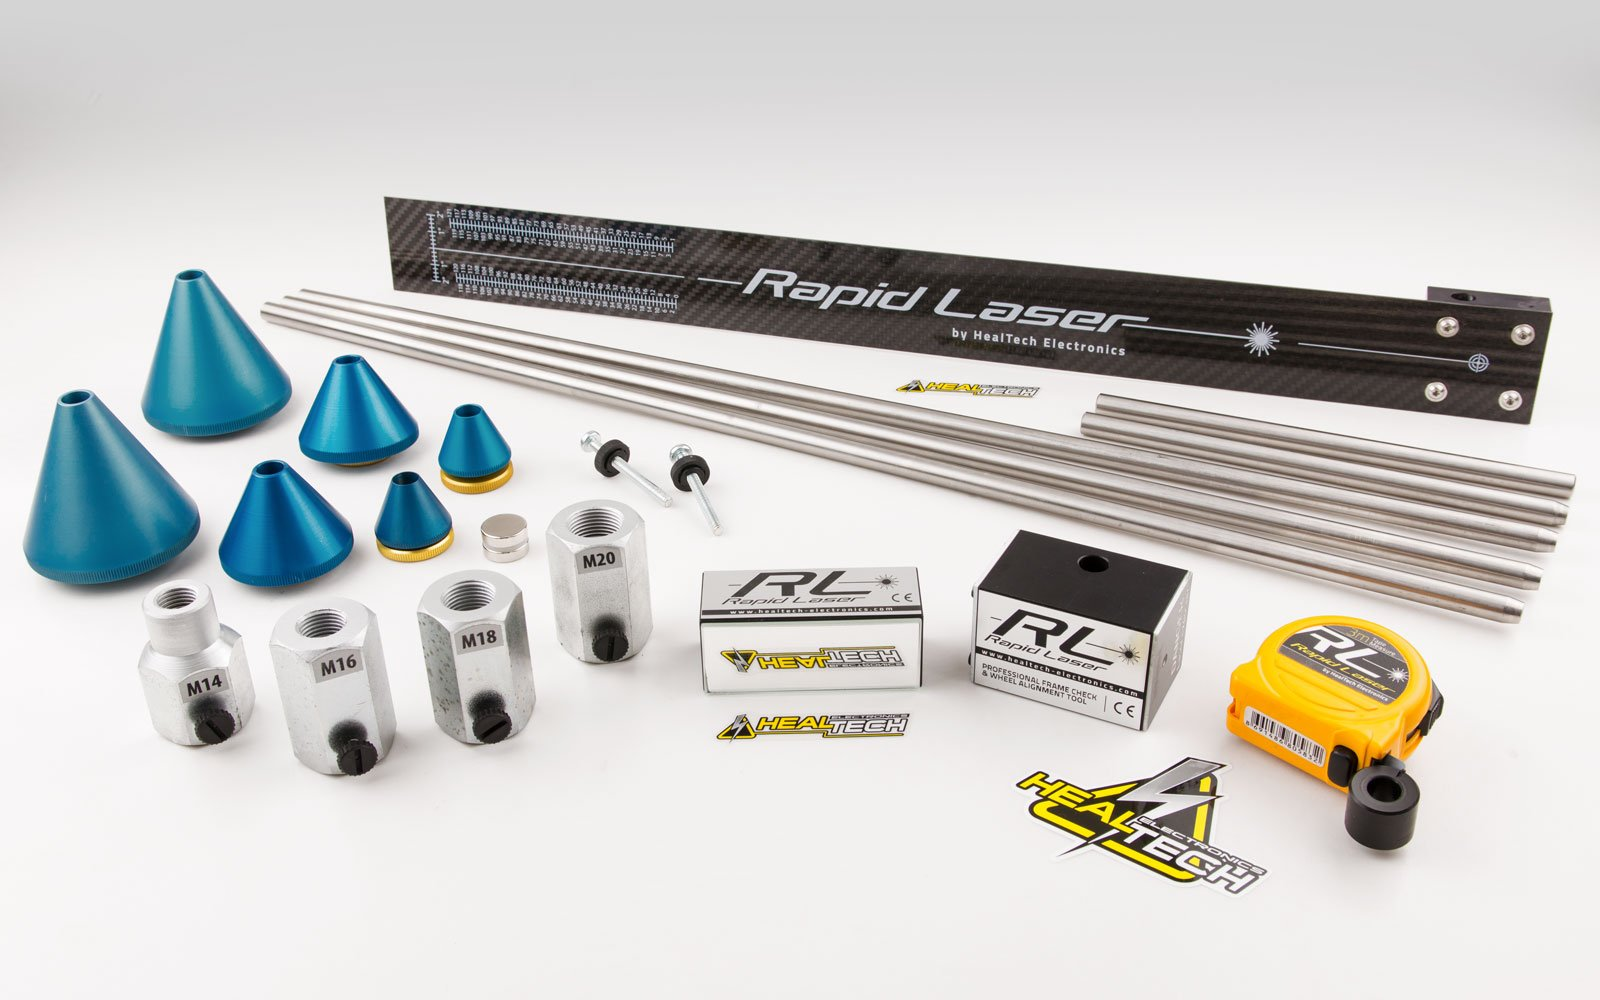 RapidLaser retail kit